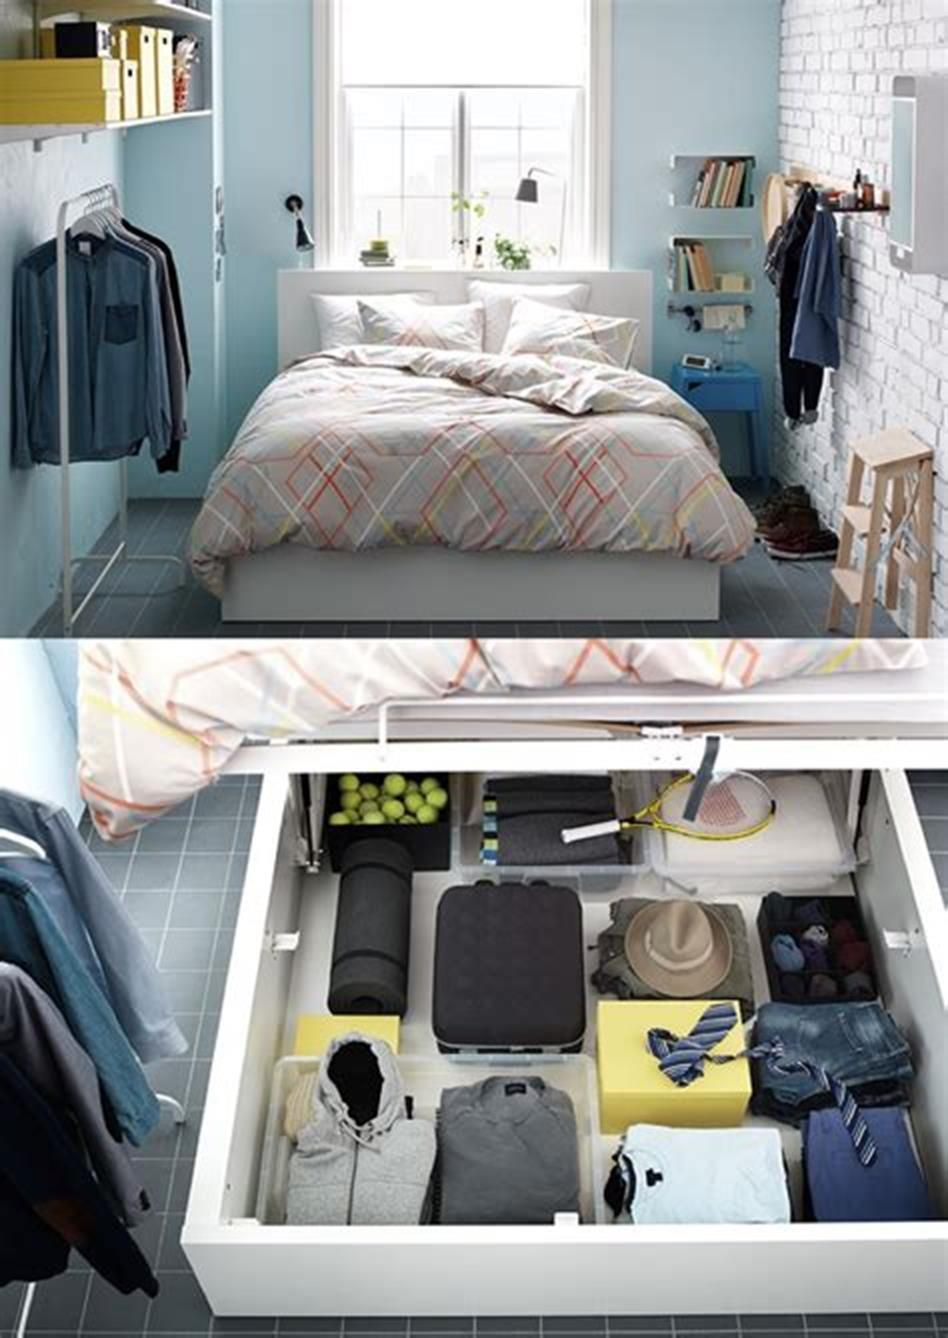 Best 45 Storage Ideas For Small Bedrooms On A Budget Comedecor Small Bedroom Ikea Bedroom Bedroom Design